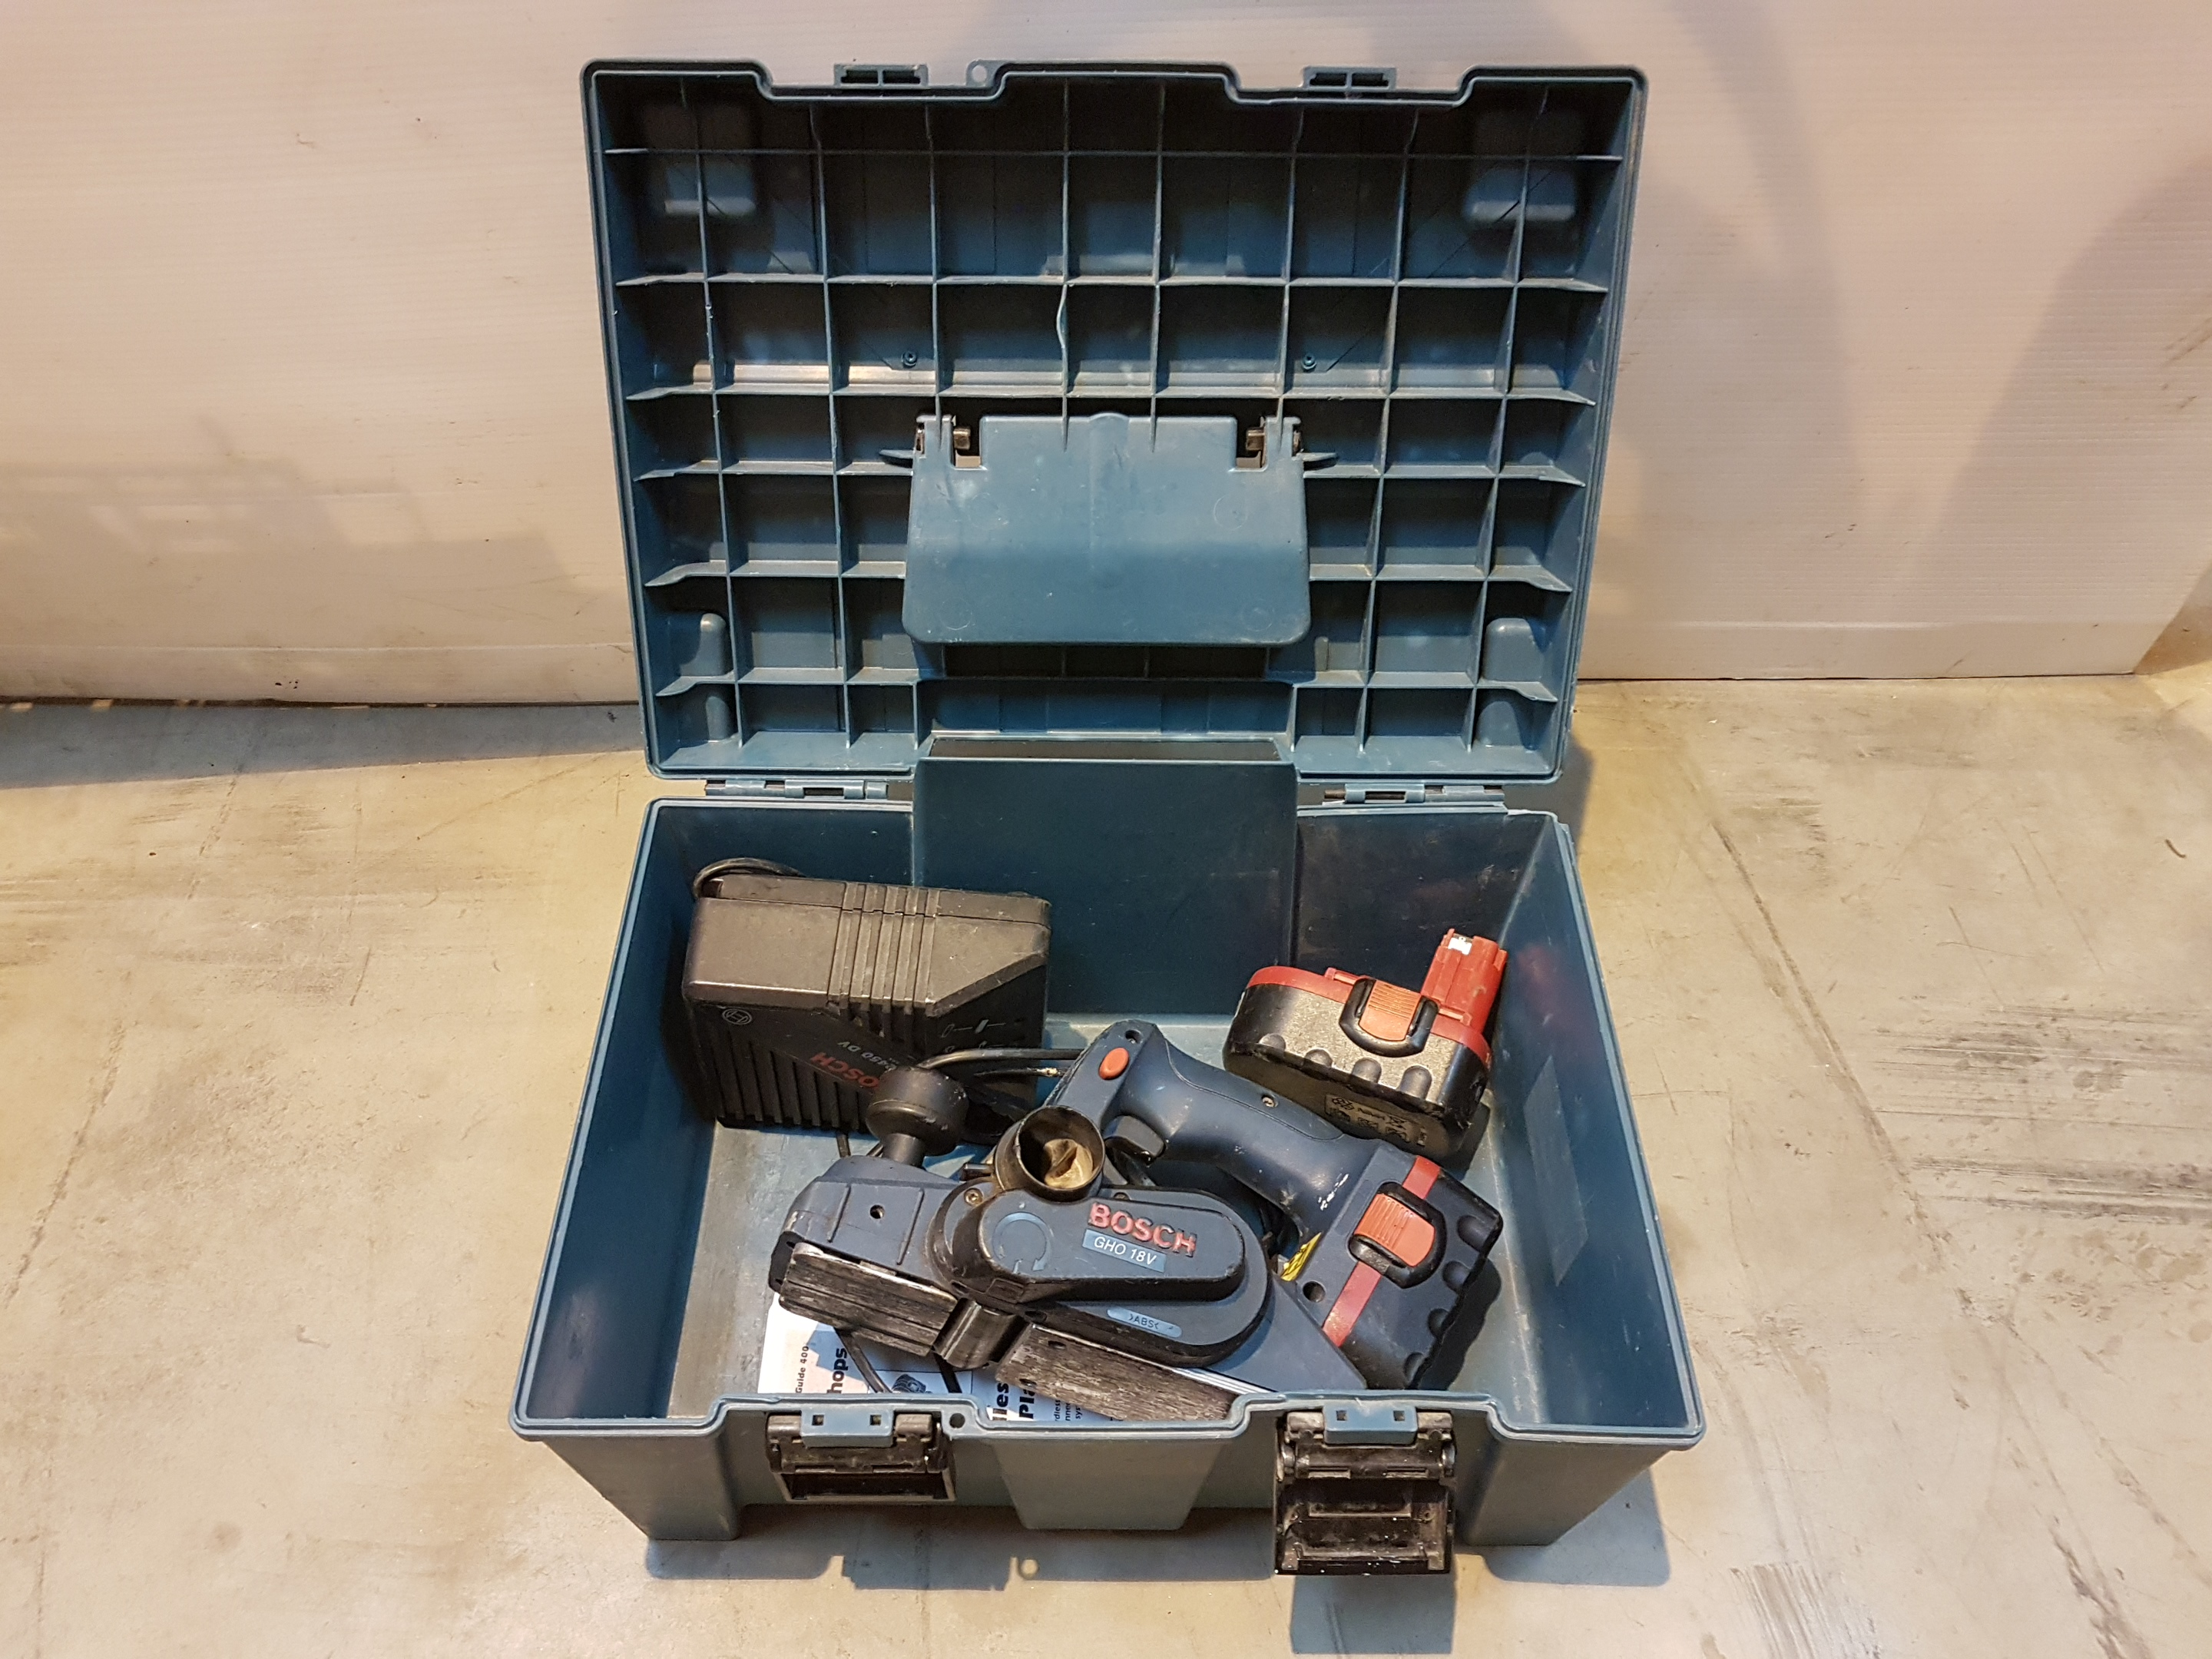 Lot 12 - Bosch POWER PLANE CORDLESS X2 Batteries & Charger 18V, working